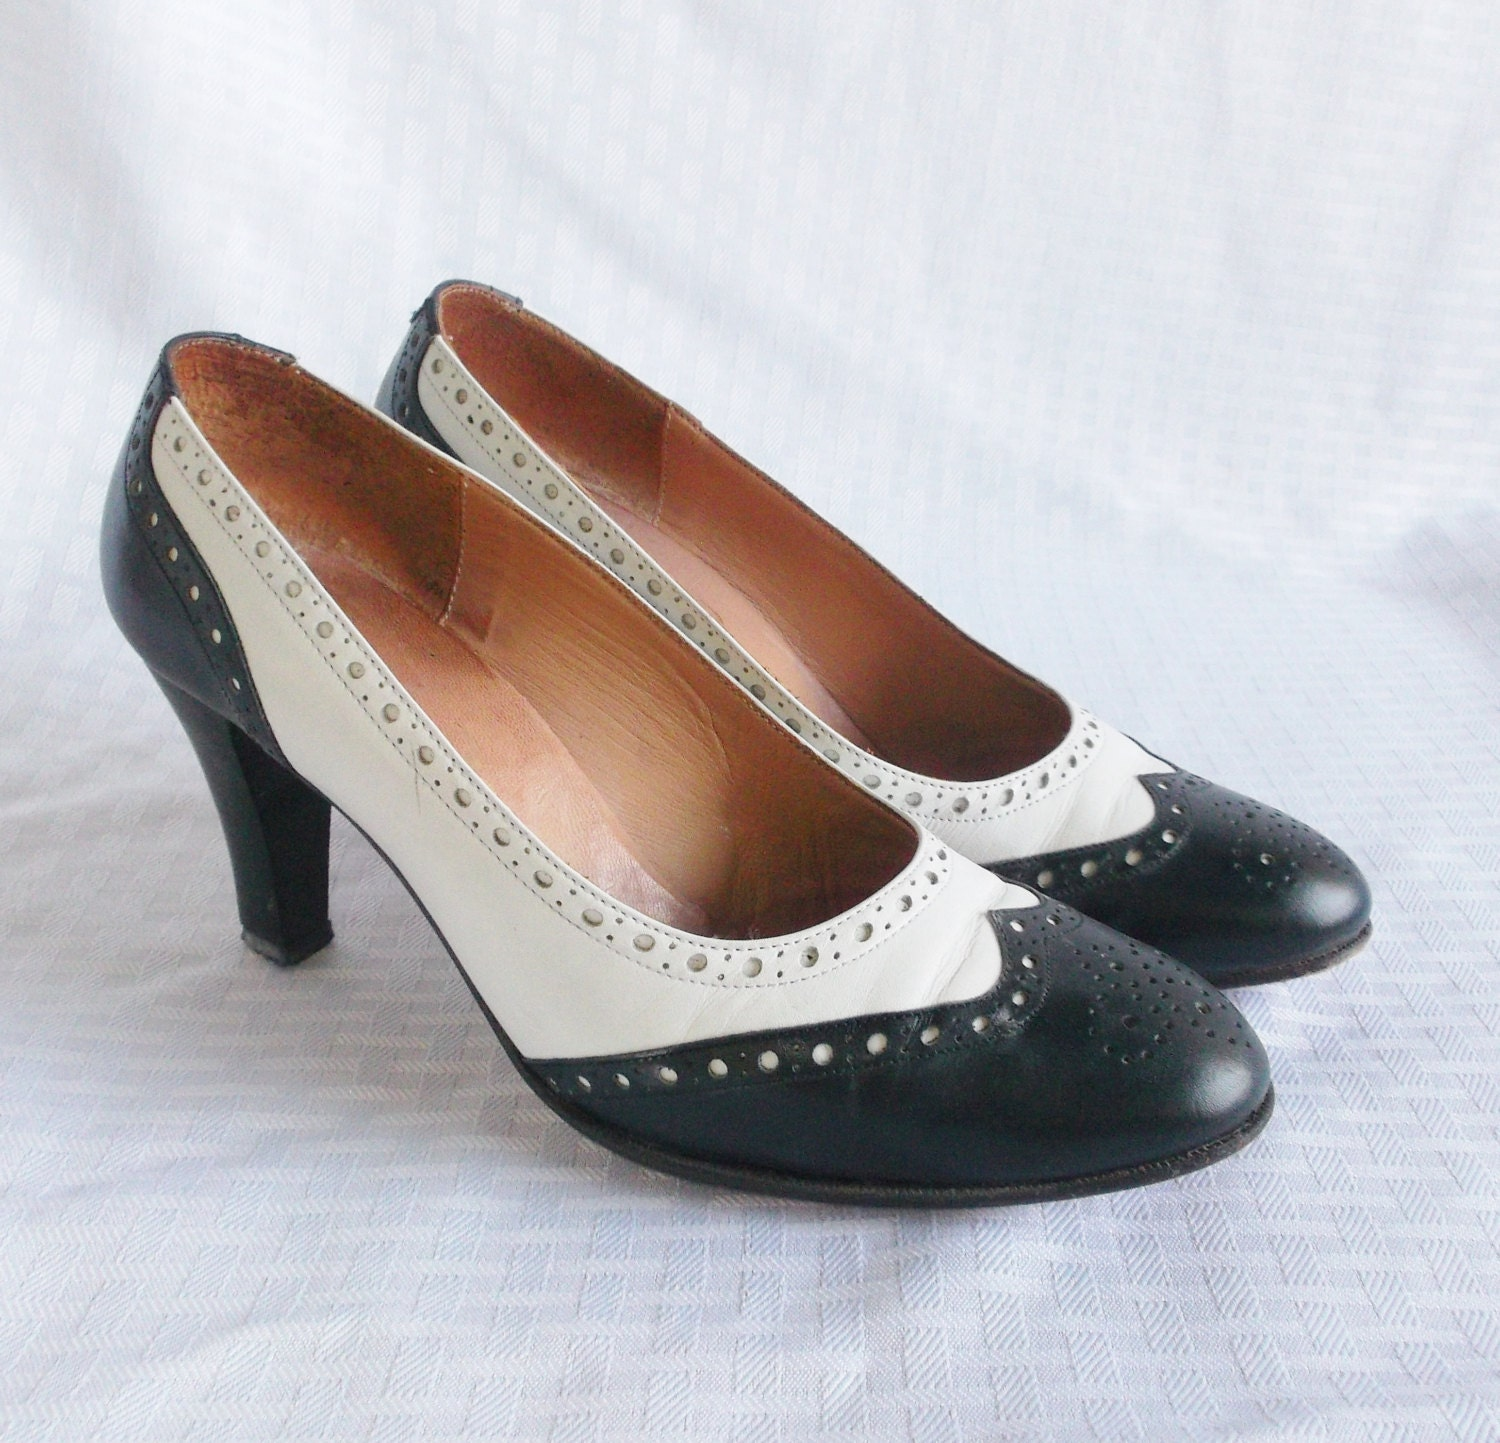 1970 s vintage black and white spectator pumps shoes by